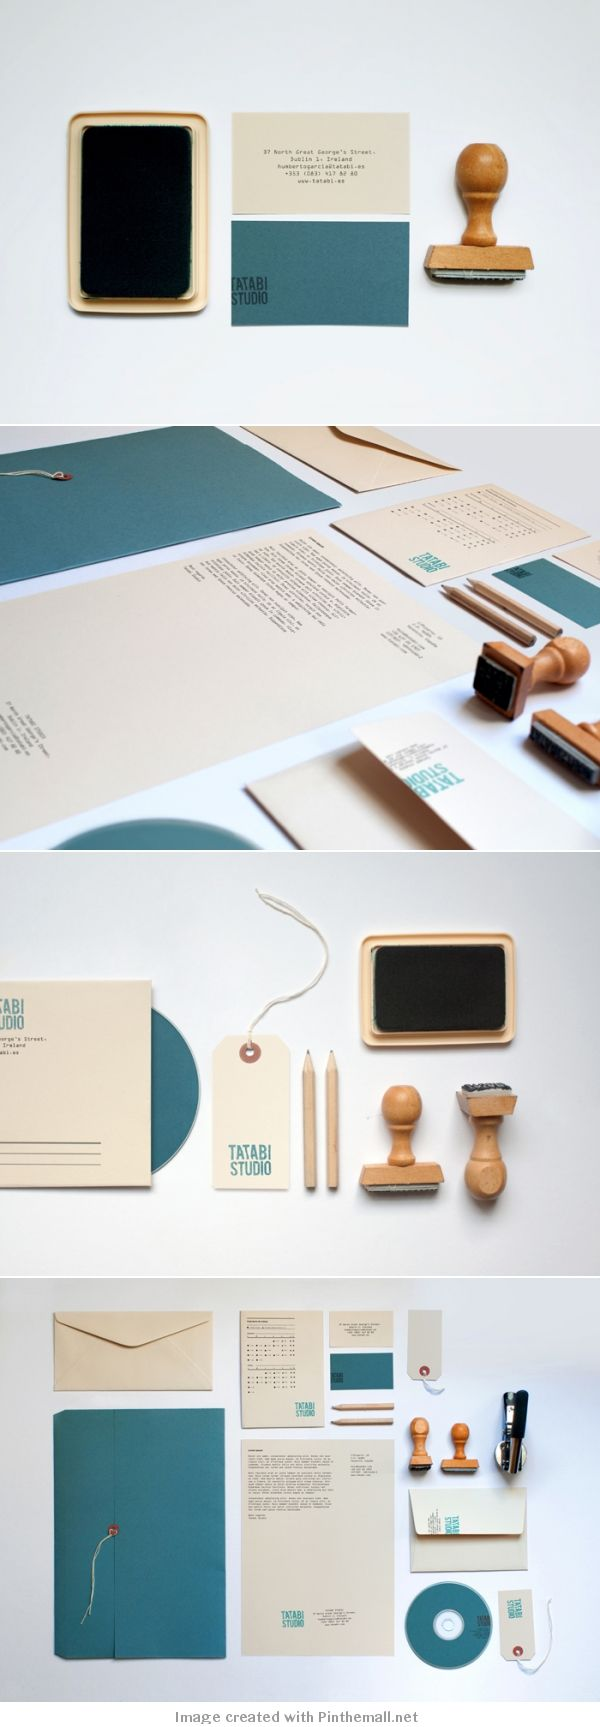 Identity / Corporate design letterhead letter business card logo envelop colors graphic minimal stamp